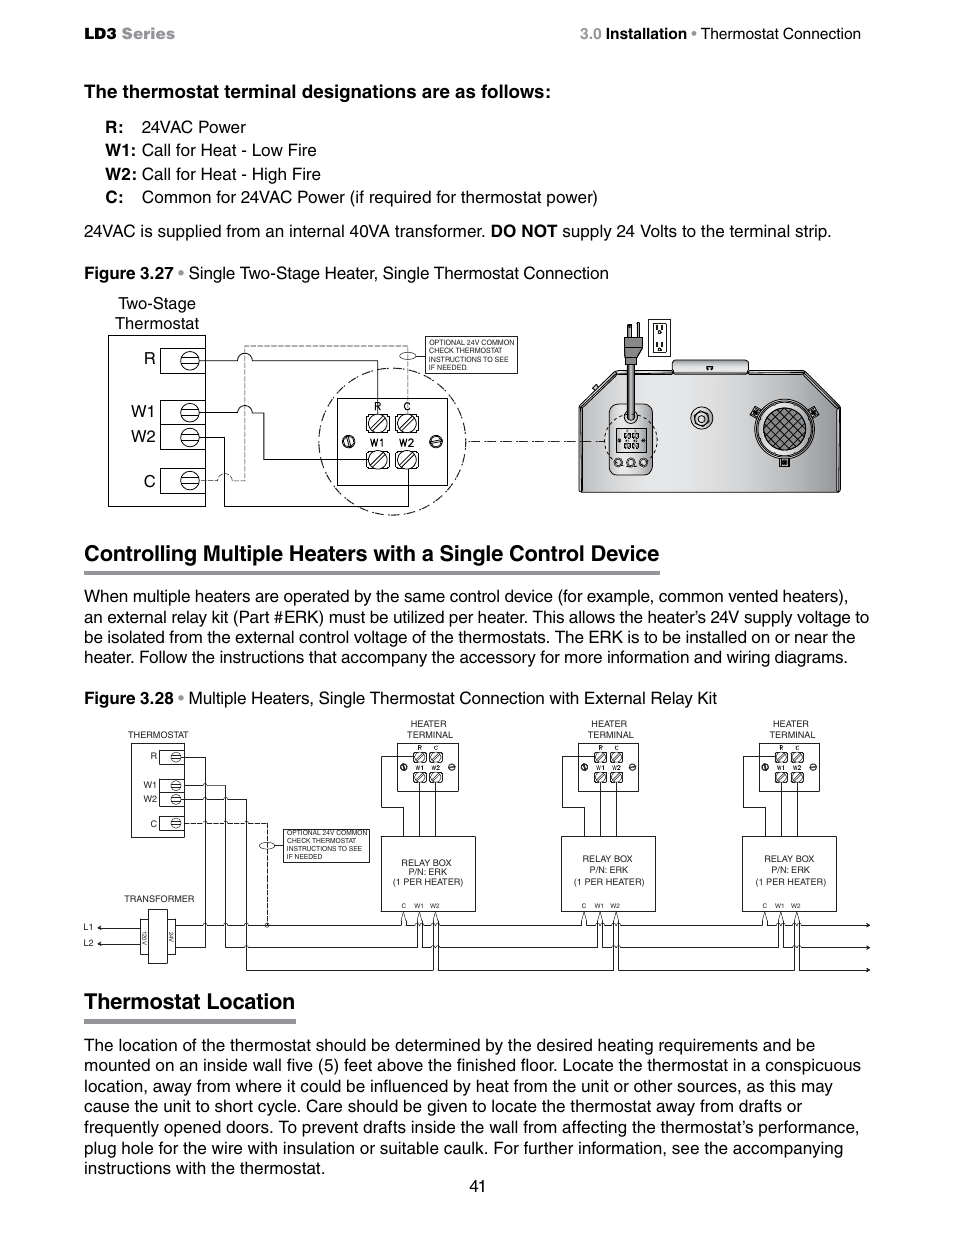 hight resolution of thermostat location cr w1 w2 two stage thermostat detroit radiant products company ld3